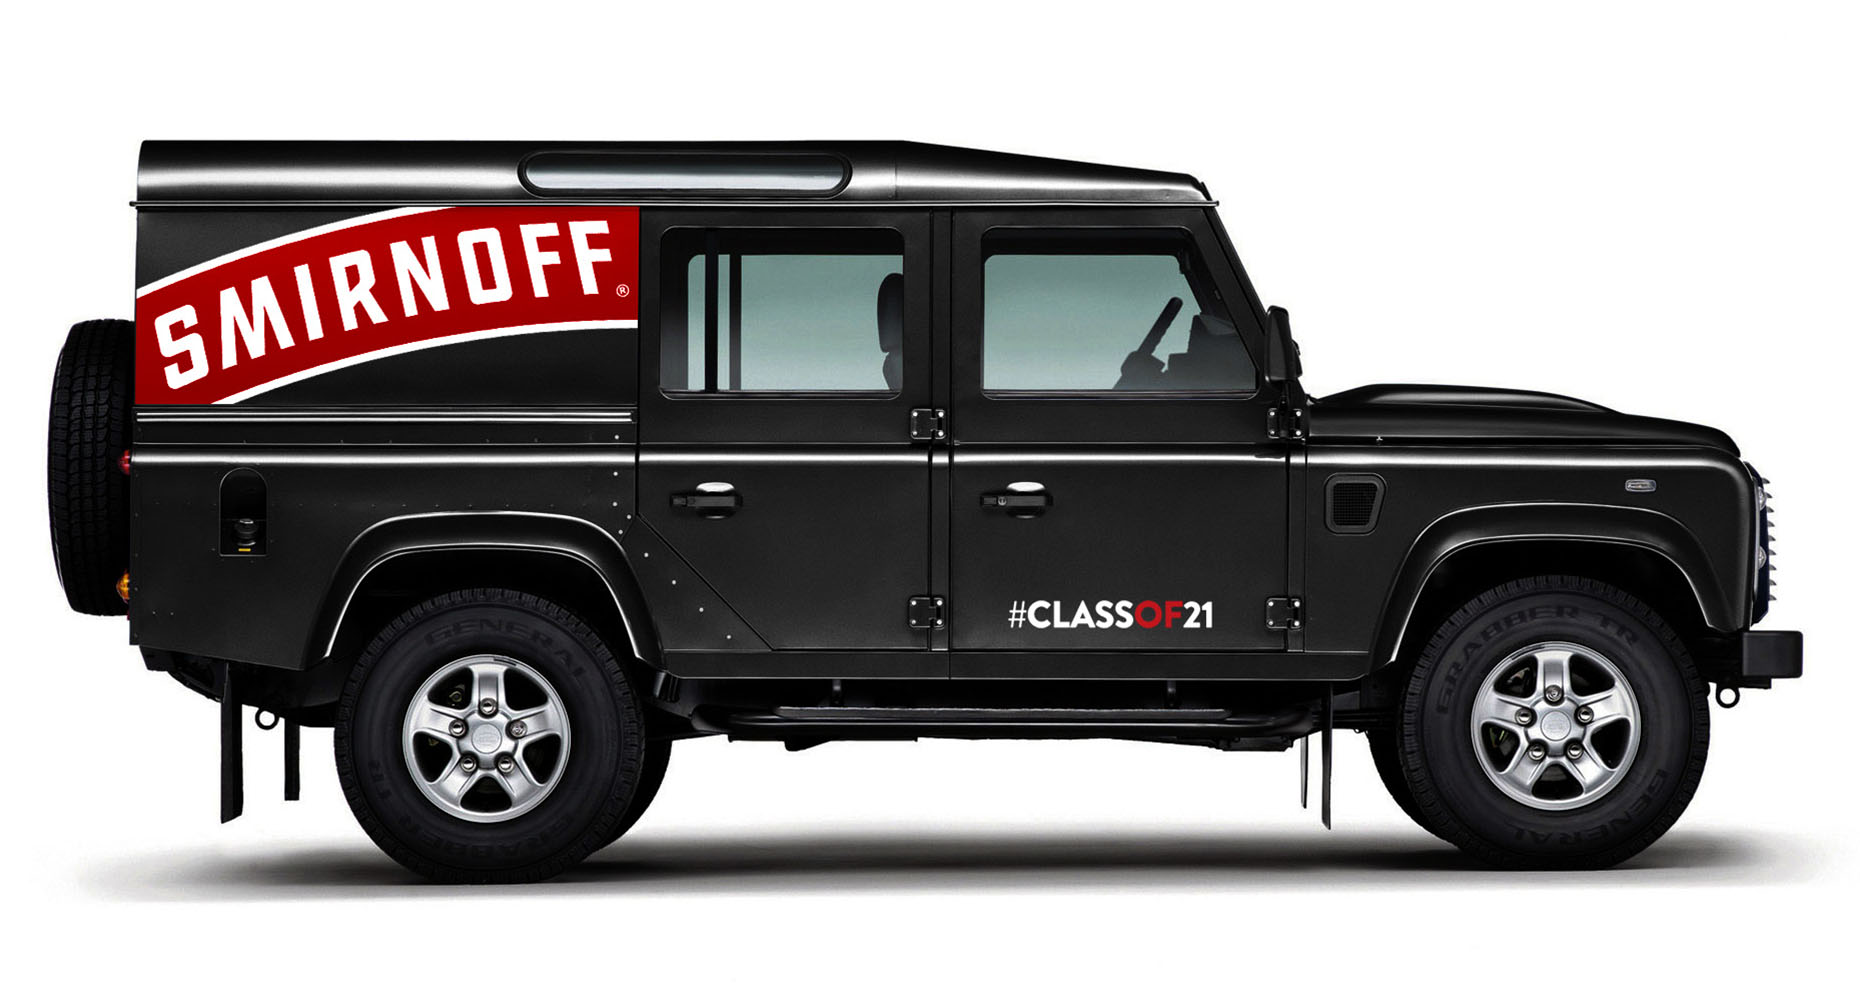 Smirnoff Vehicle Branding